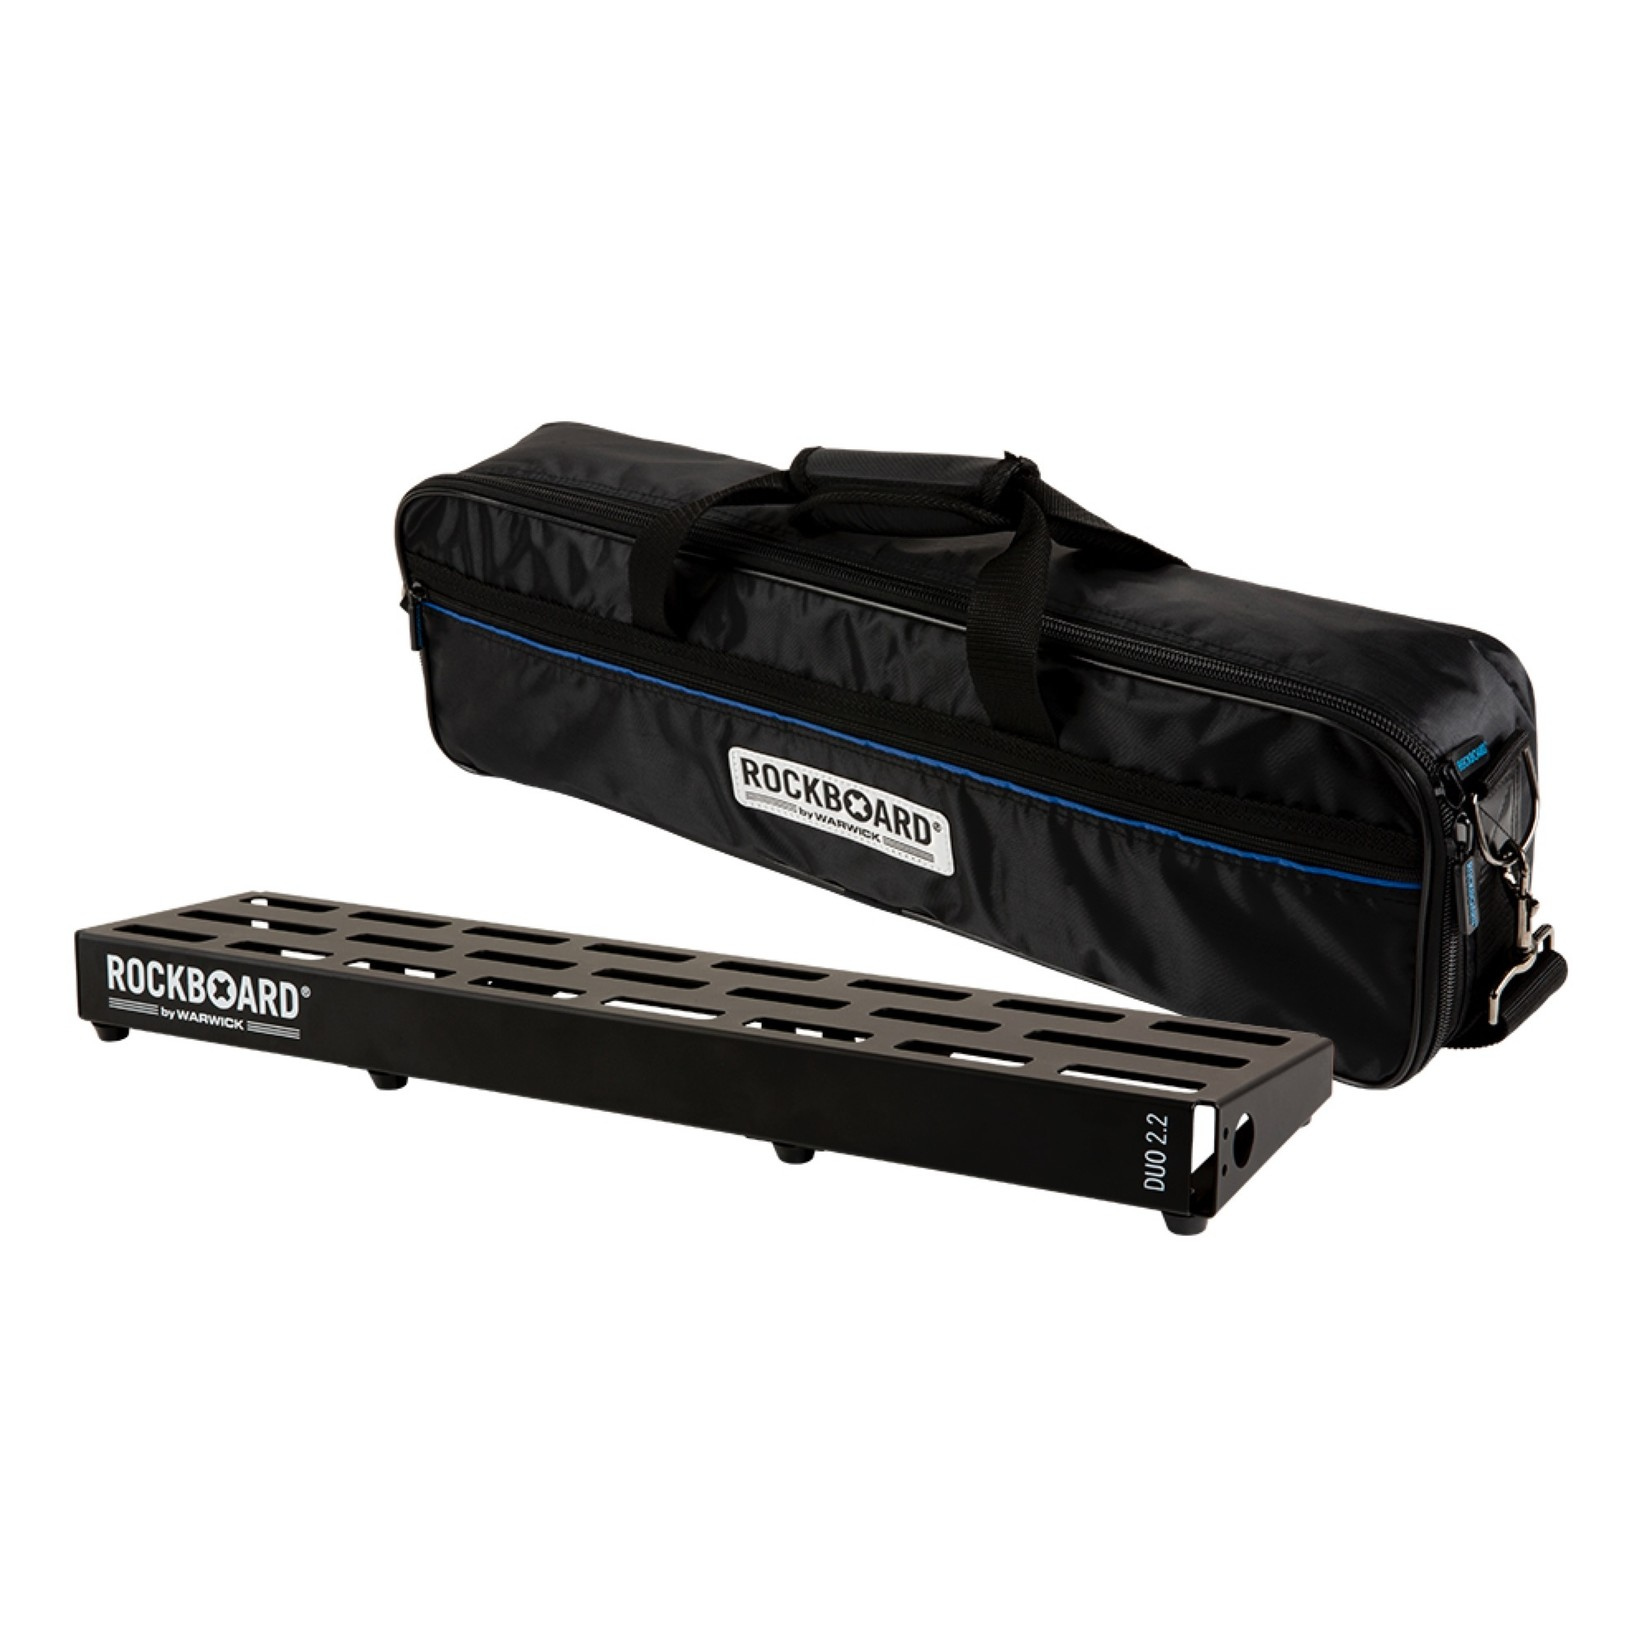 "Rockboard RockBoard DUO 2.2, Pedalboard with Gig Bag (for 5-9 pedals), approx. 24.5"" x 5.5"""